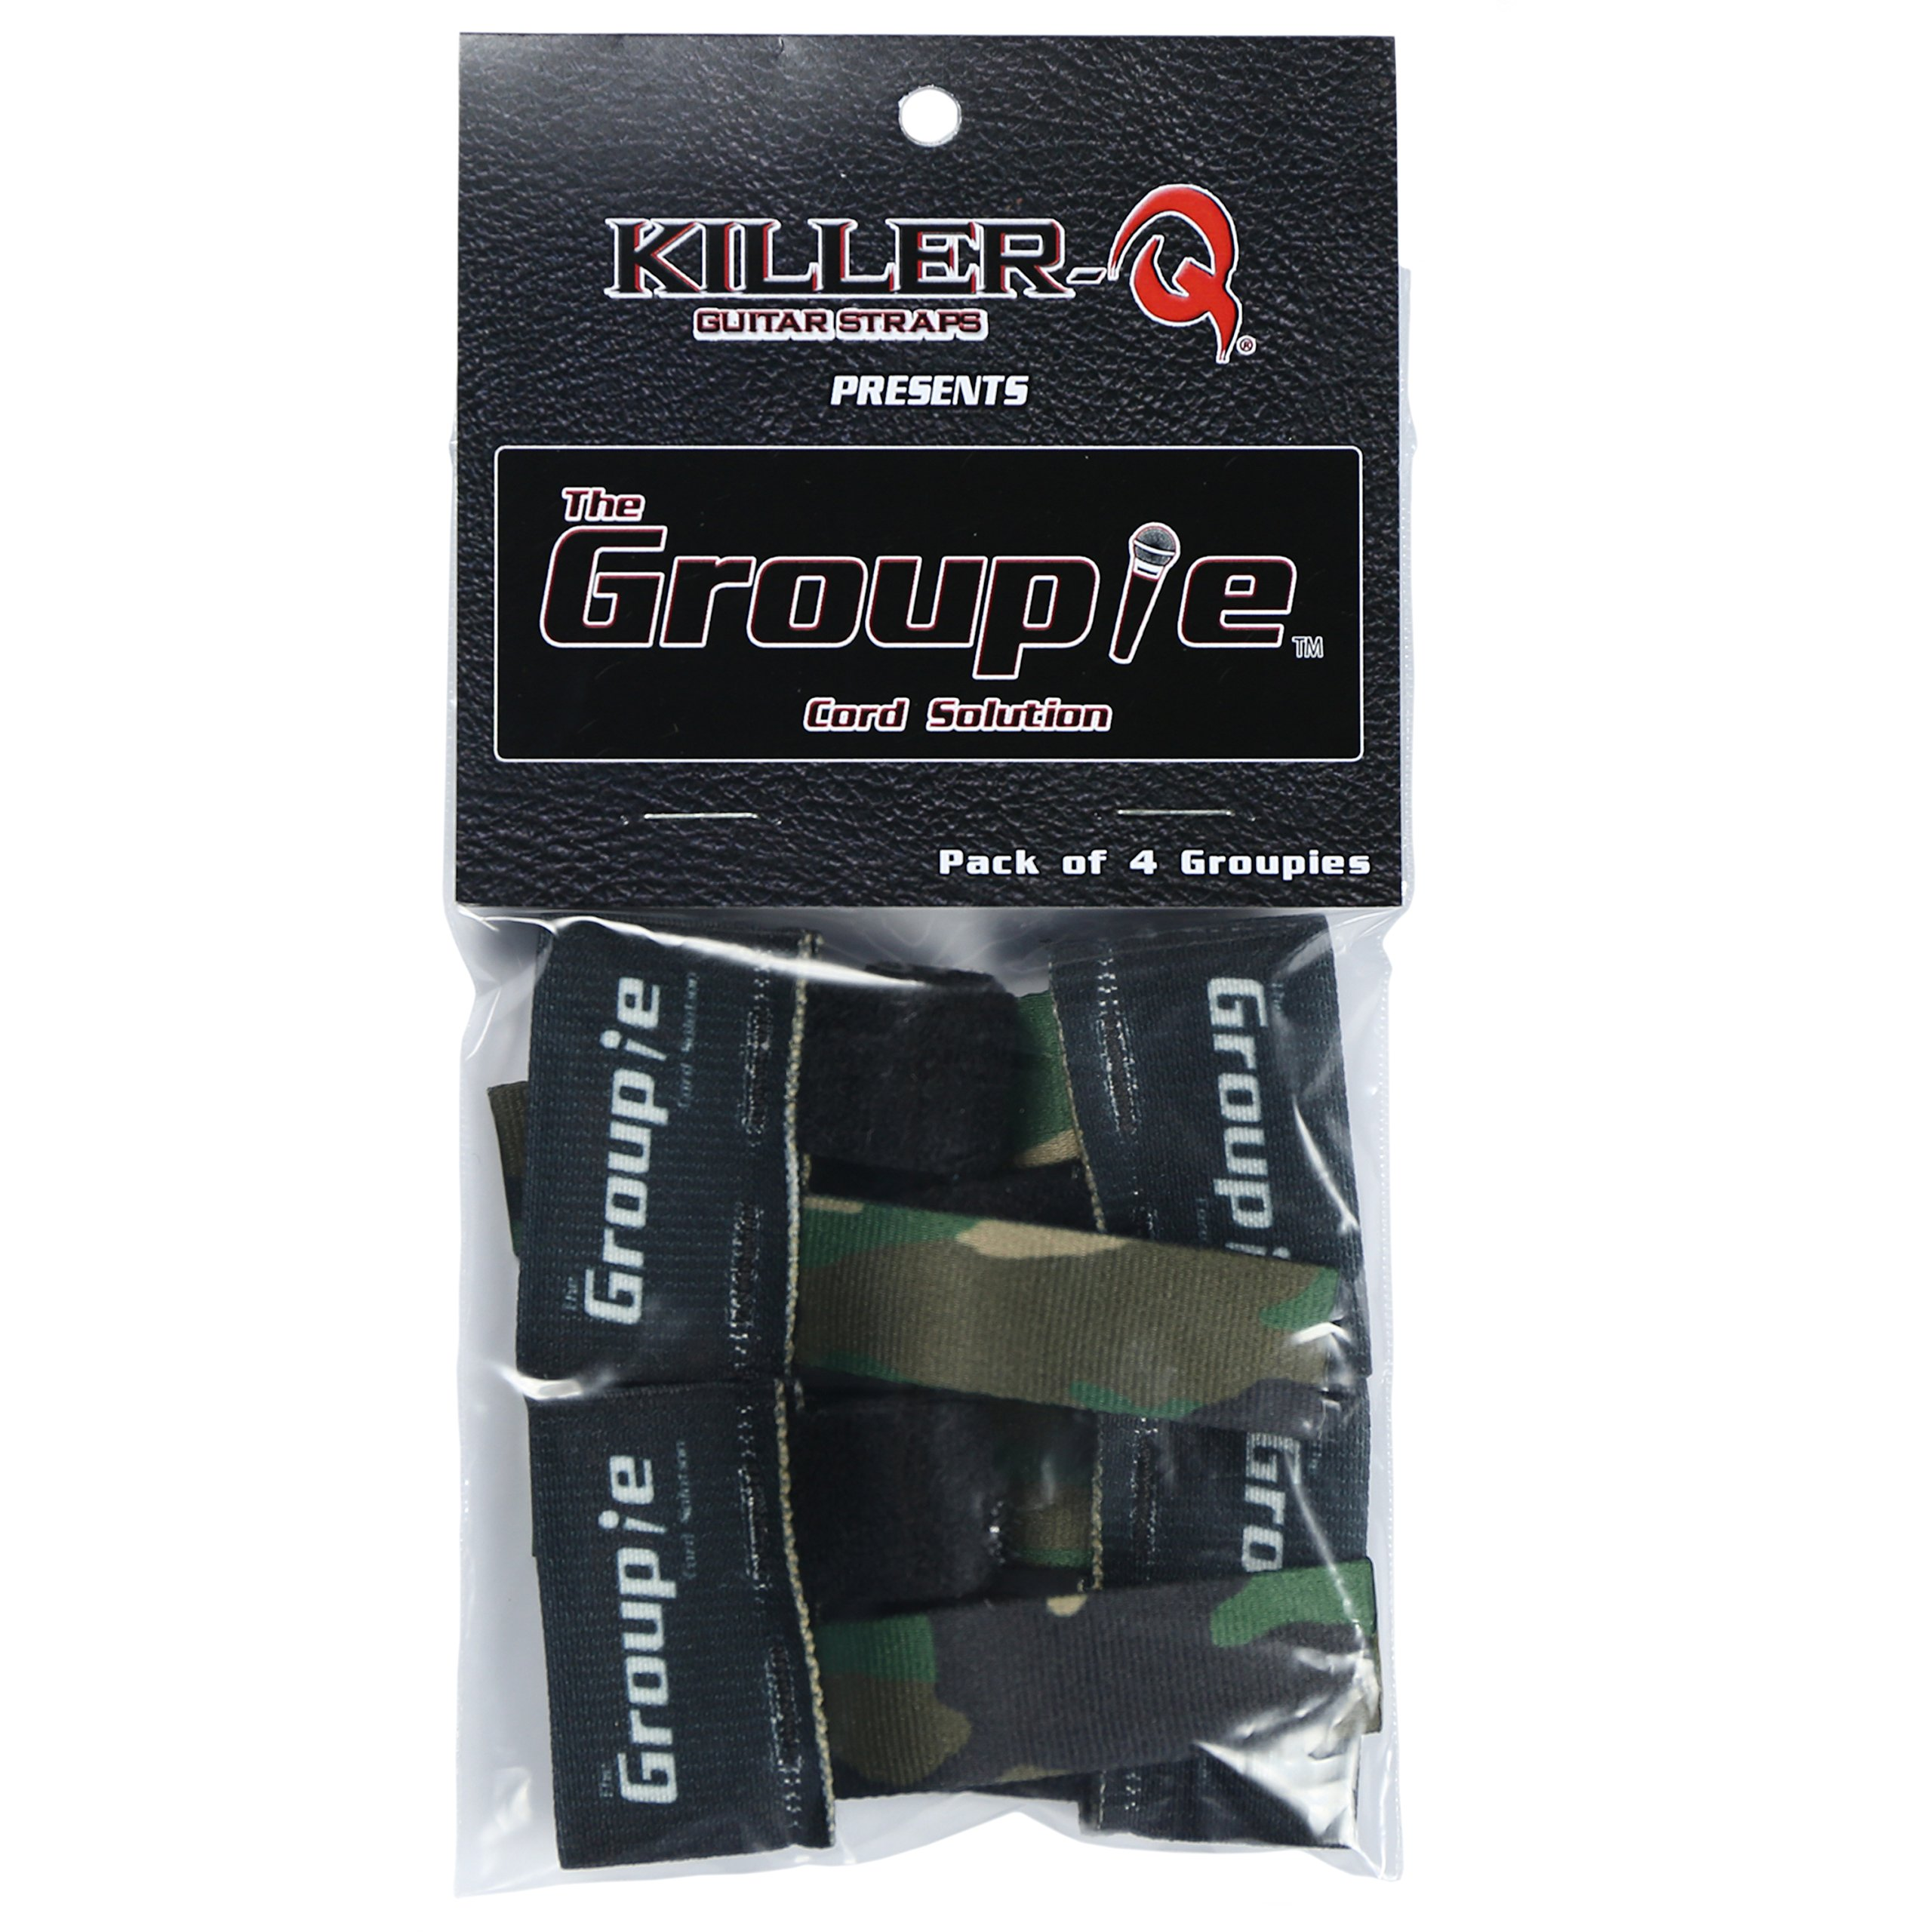 Killer-Q Guitar Cable Organizer System - The Groupie Cord Keeper Tie Solution For Instruments, Audio Equipment - Camouflage, 4 Pack